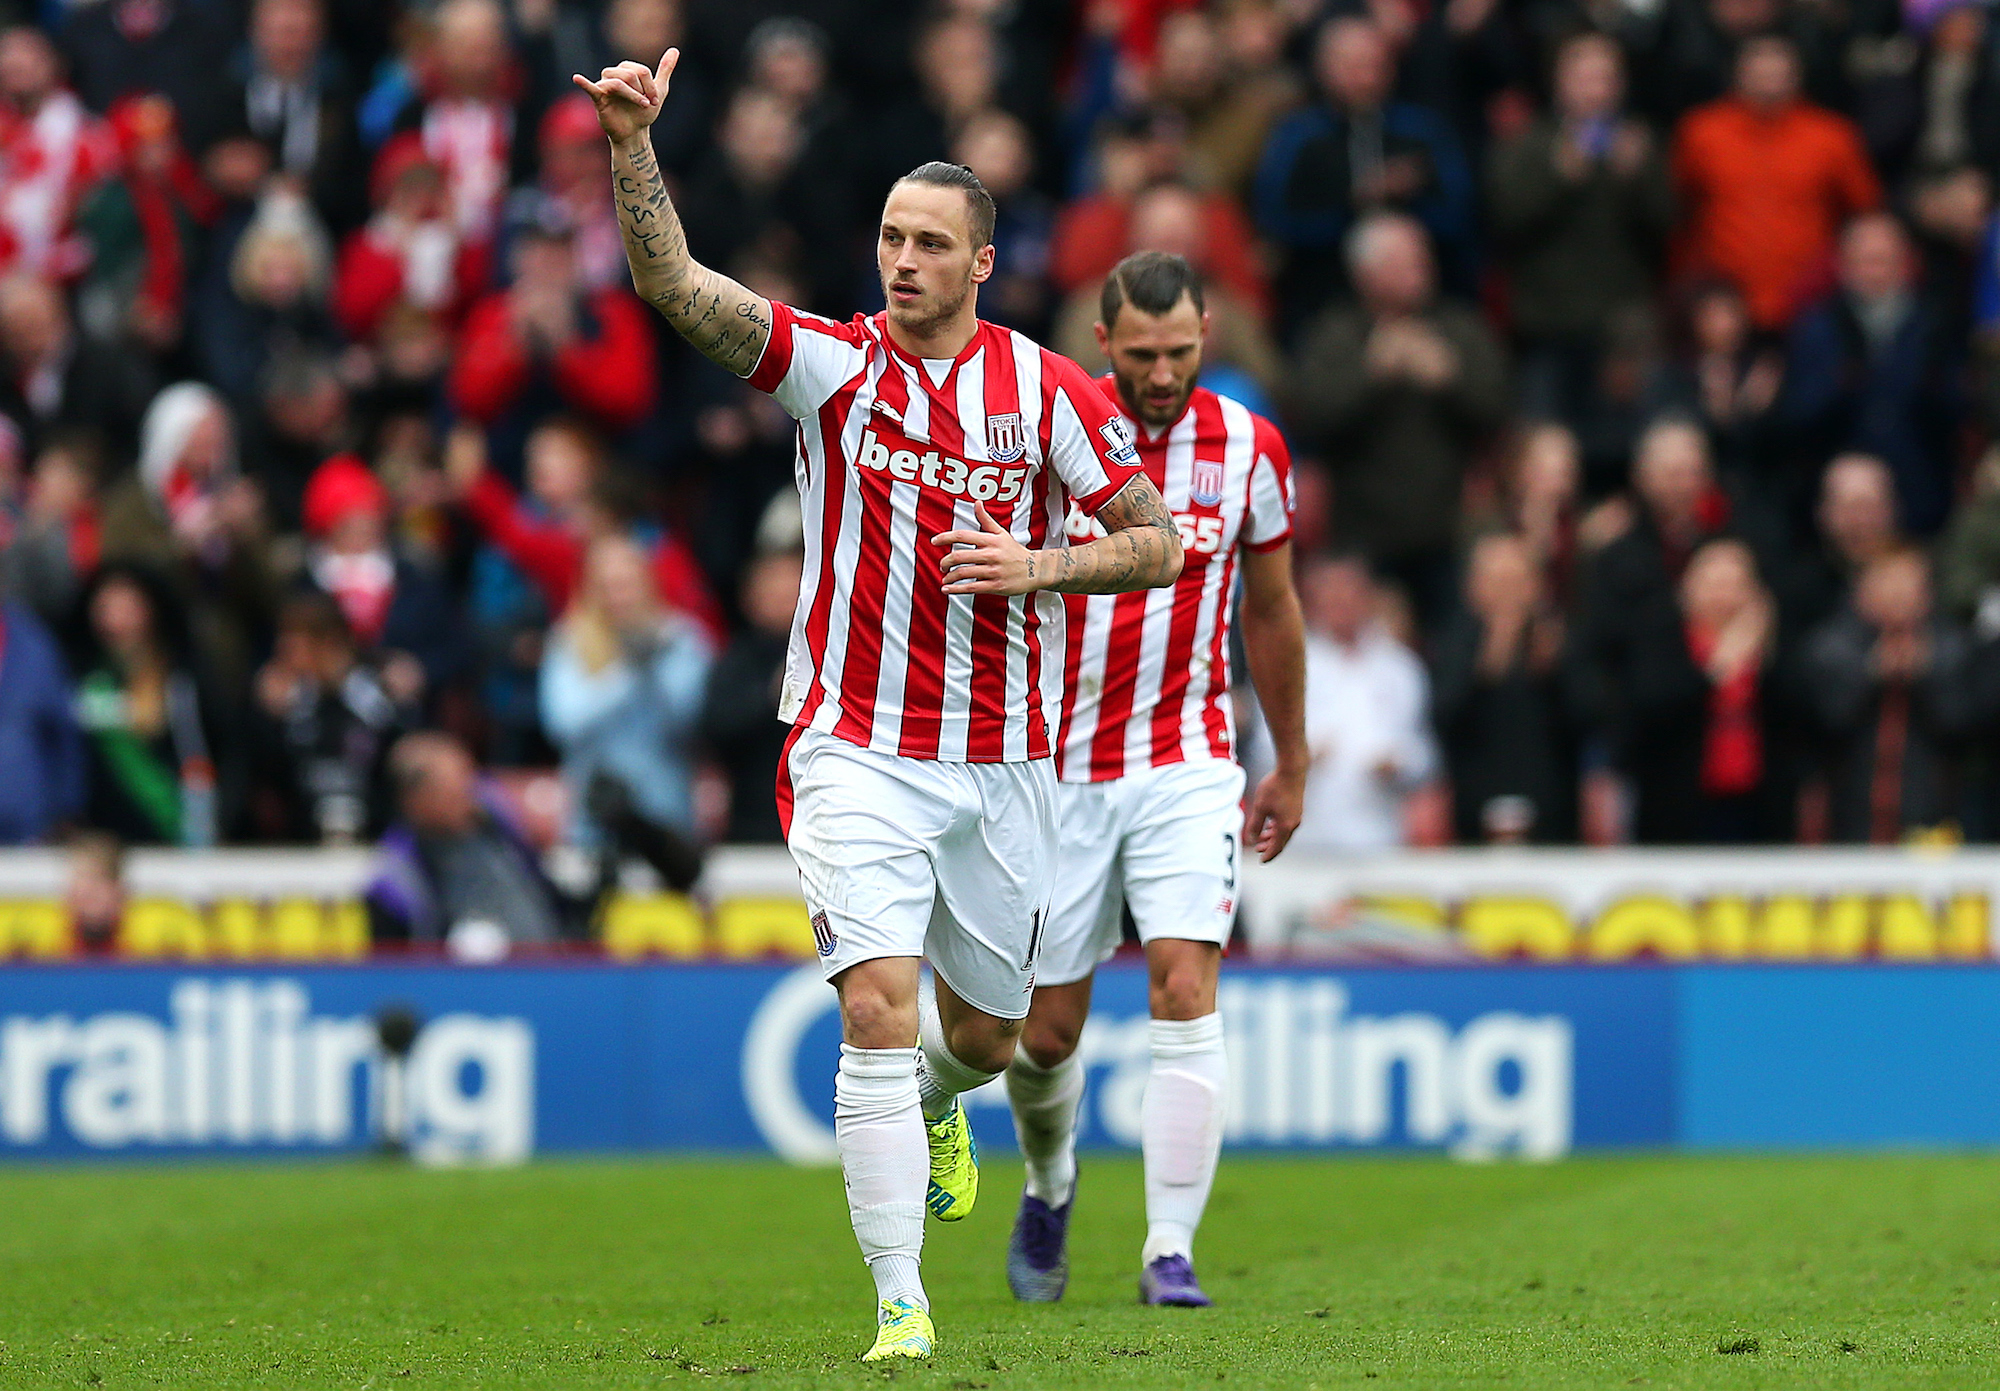 L'ex interista Marko Arnautovic ha trovato la sua dimensione ideale allo Stoke: quest'anno per lui 10 gol e 4 assist in Premier League